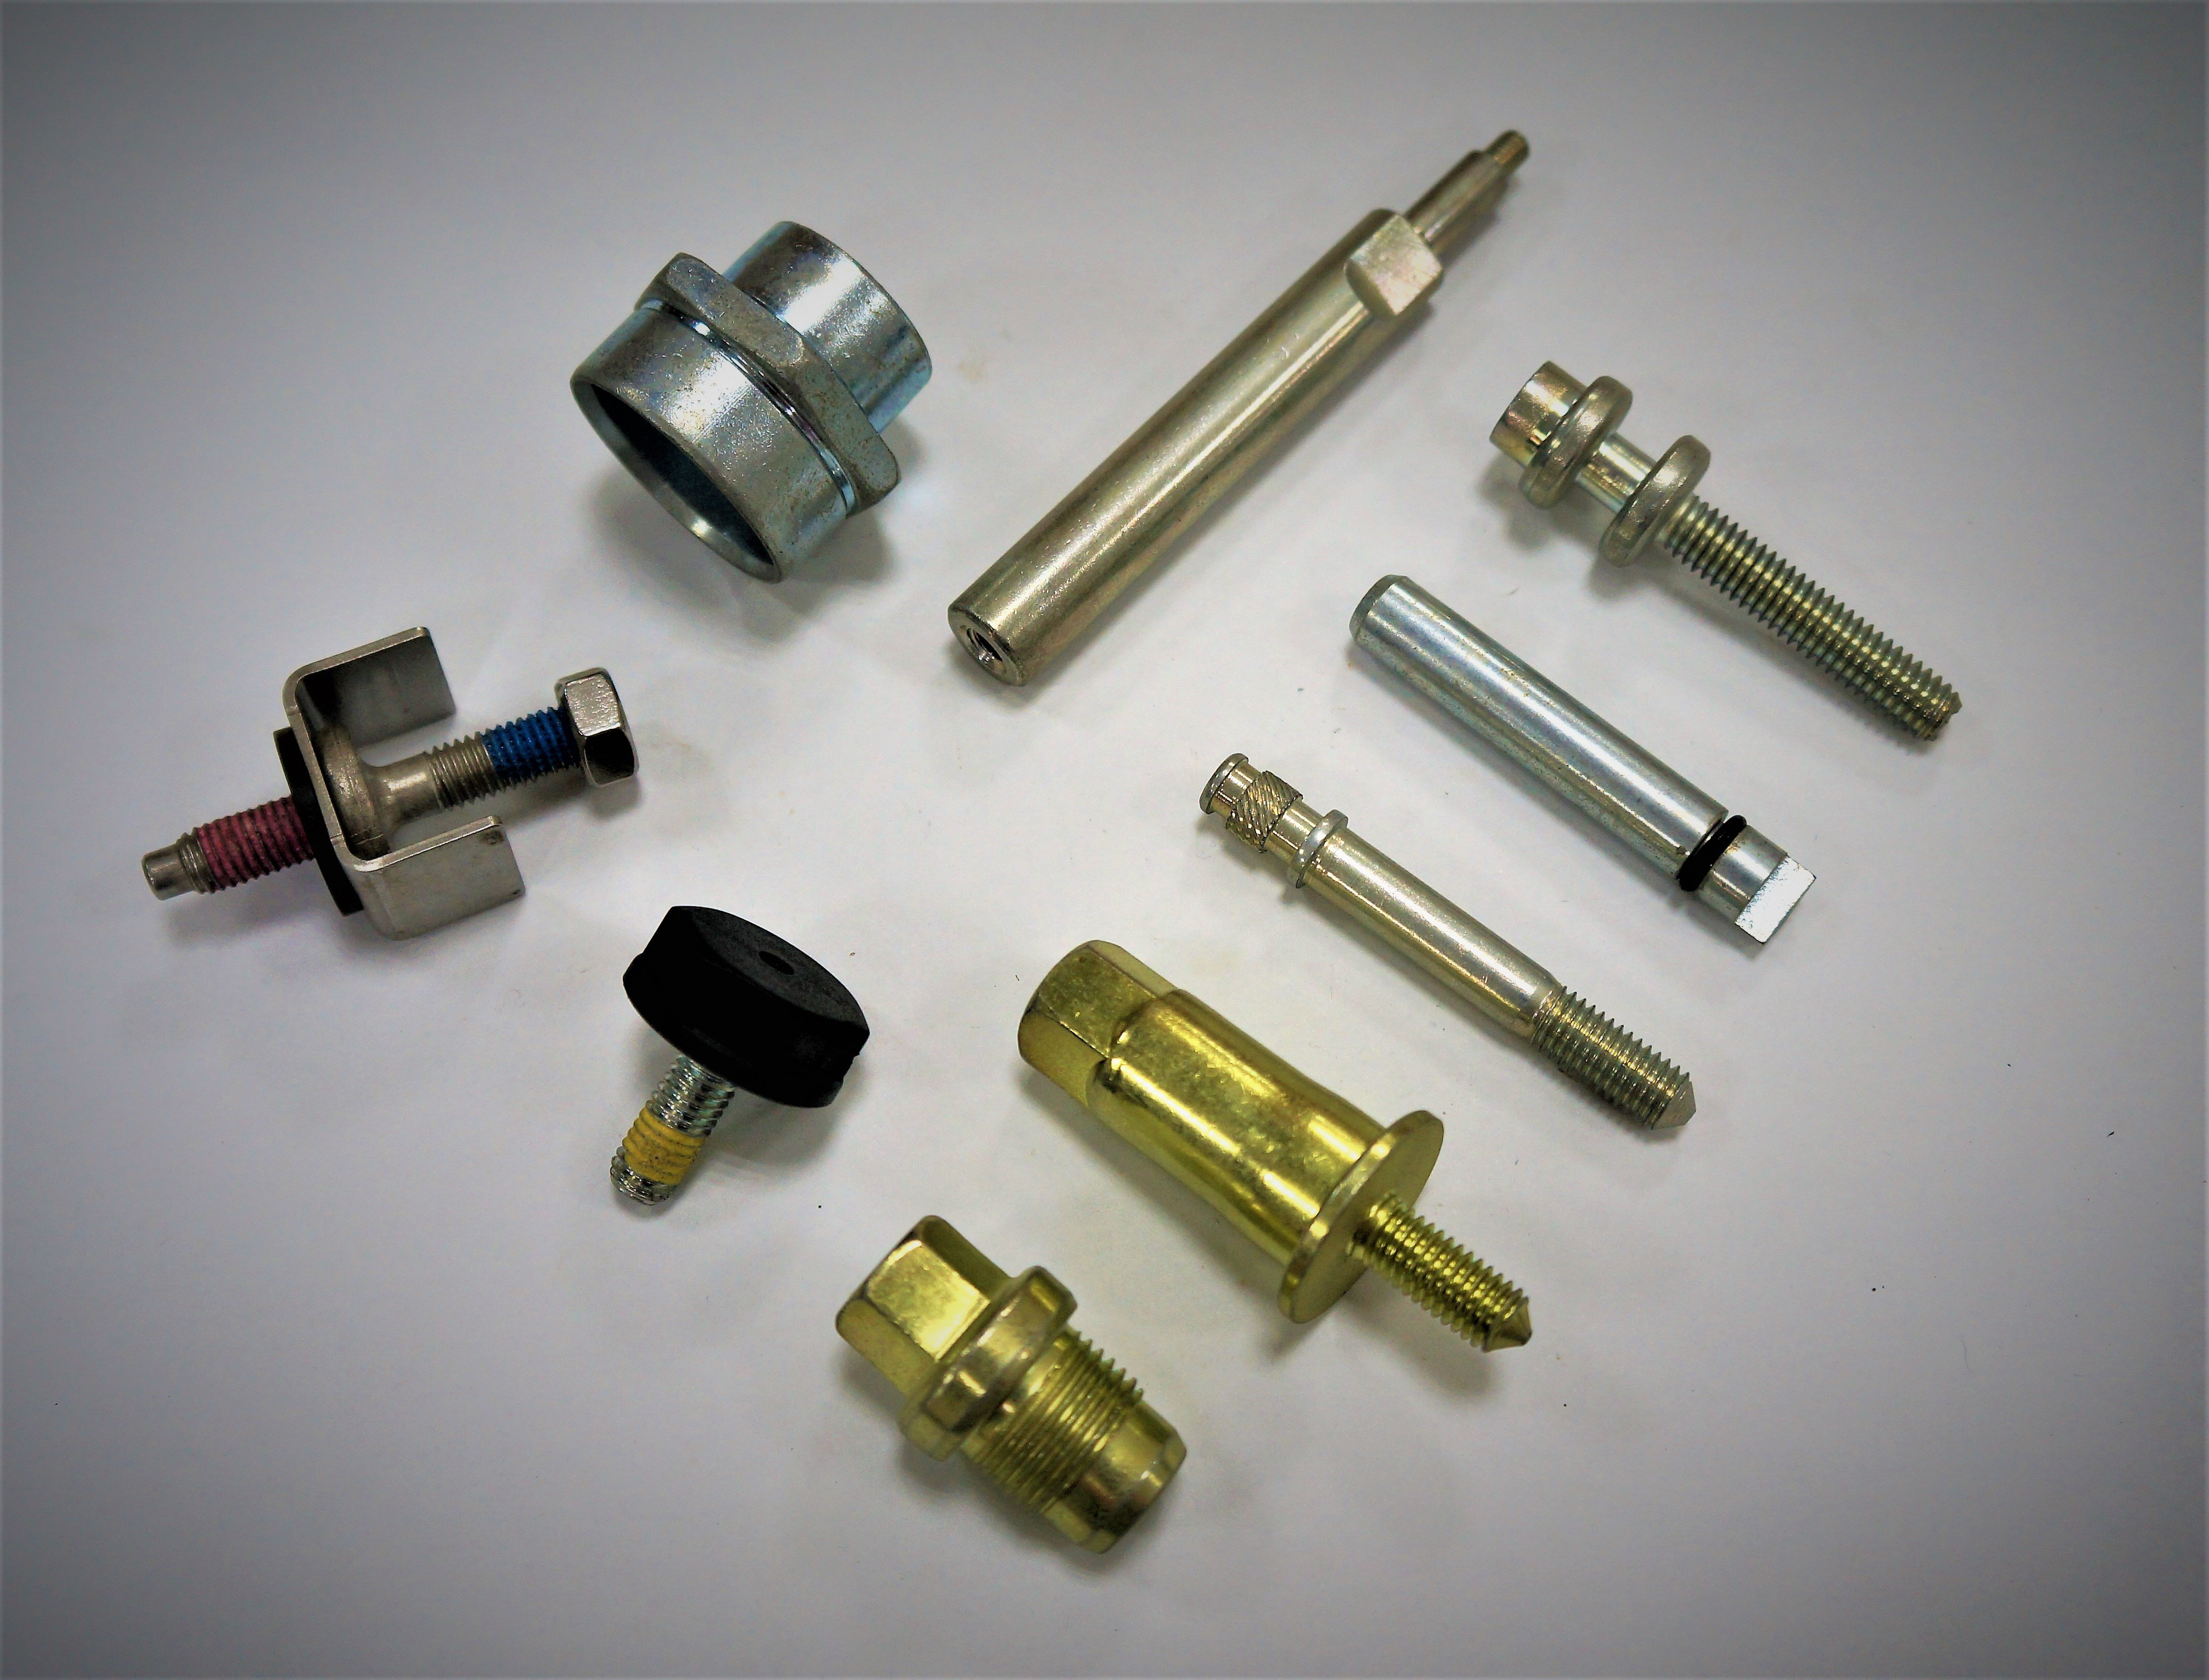 Automobile Special Screw with O-Ring for Vehicle Fastener made by Sunny Screw Industry 三能螺栓工業股份有限公司 - MatchSupplier.com